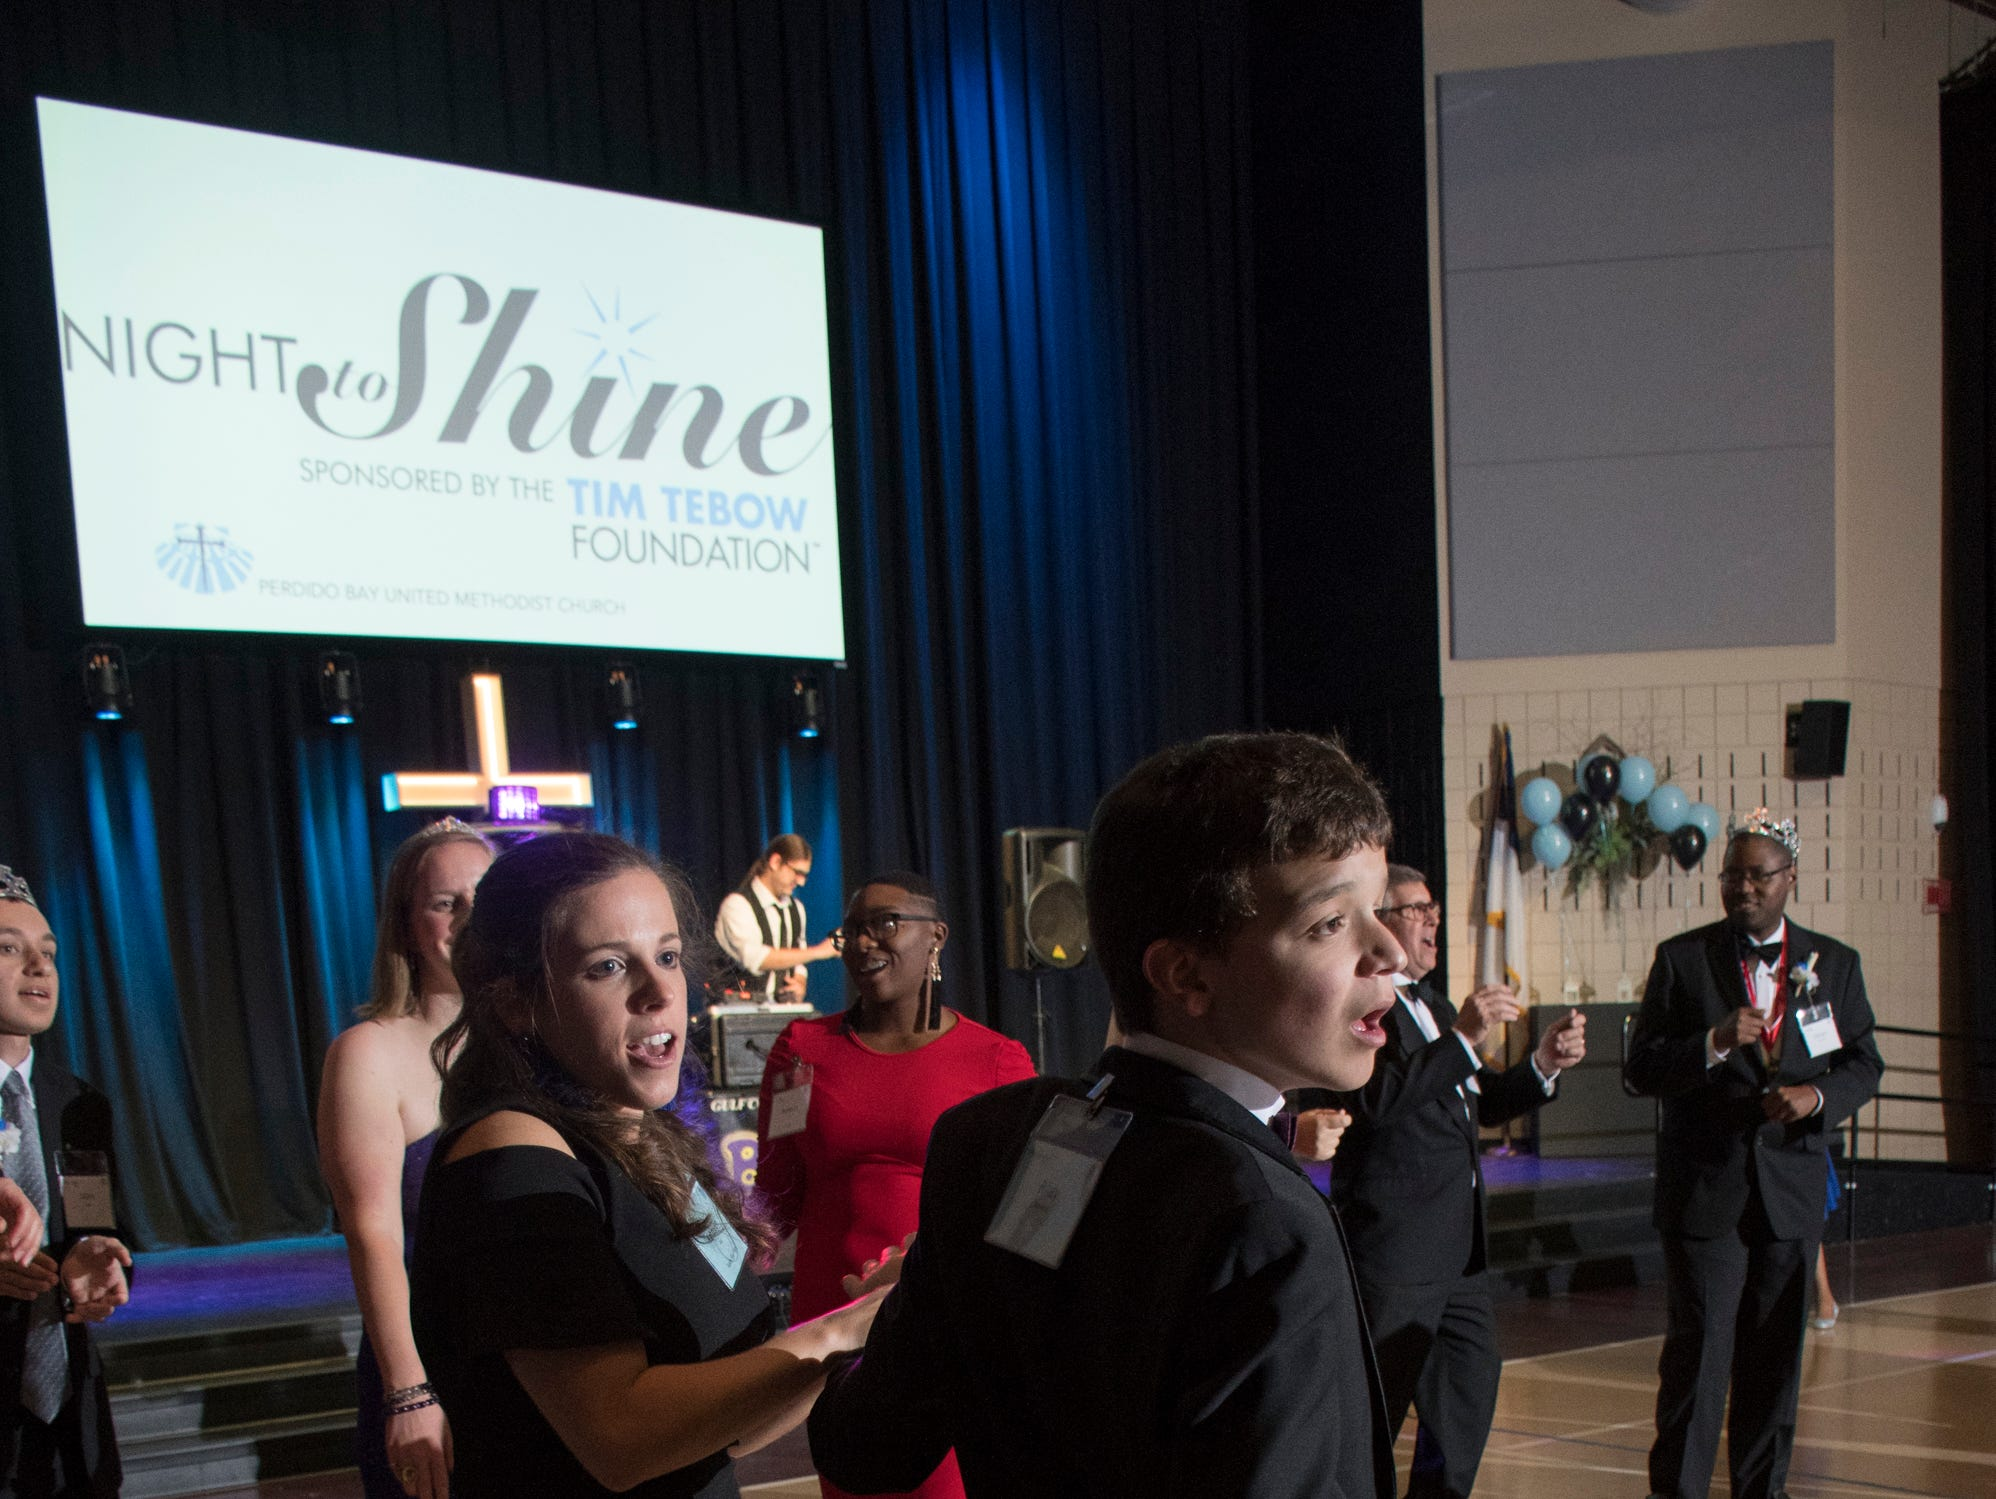 Kathleen Ross dances with Riley Stevens during the Night to Shine prom for people with special needs sponsored by the Tim Tebow Foundation at Perdido Bay United Methodist Church in Pensacola on Friday, February 8, 2019.